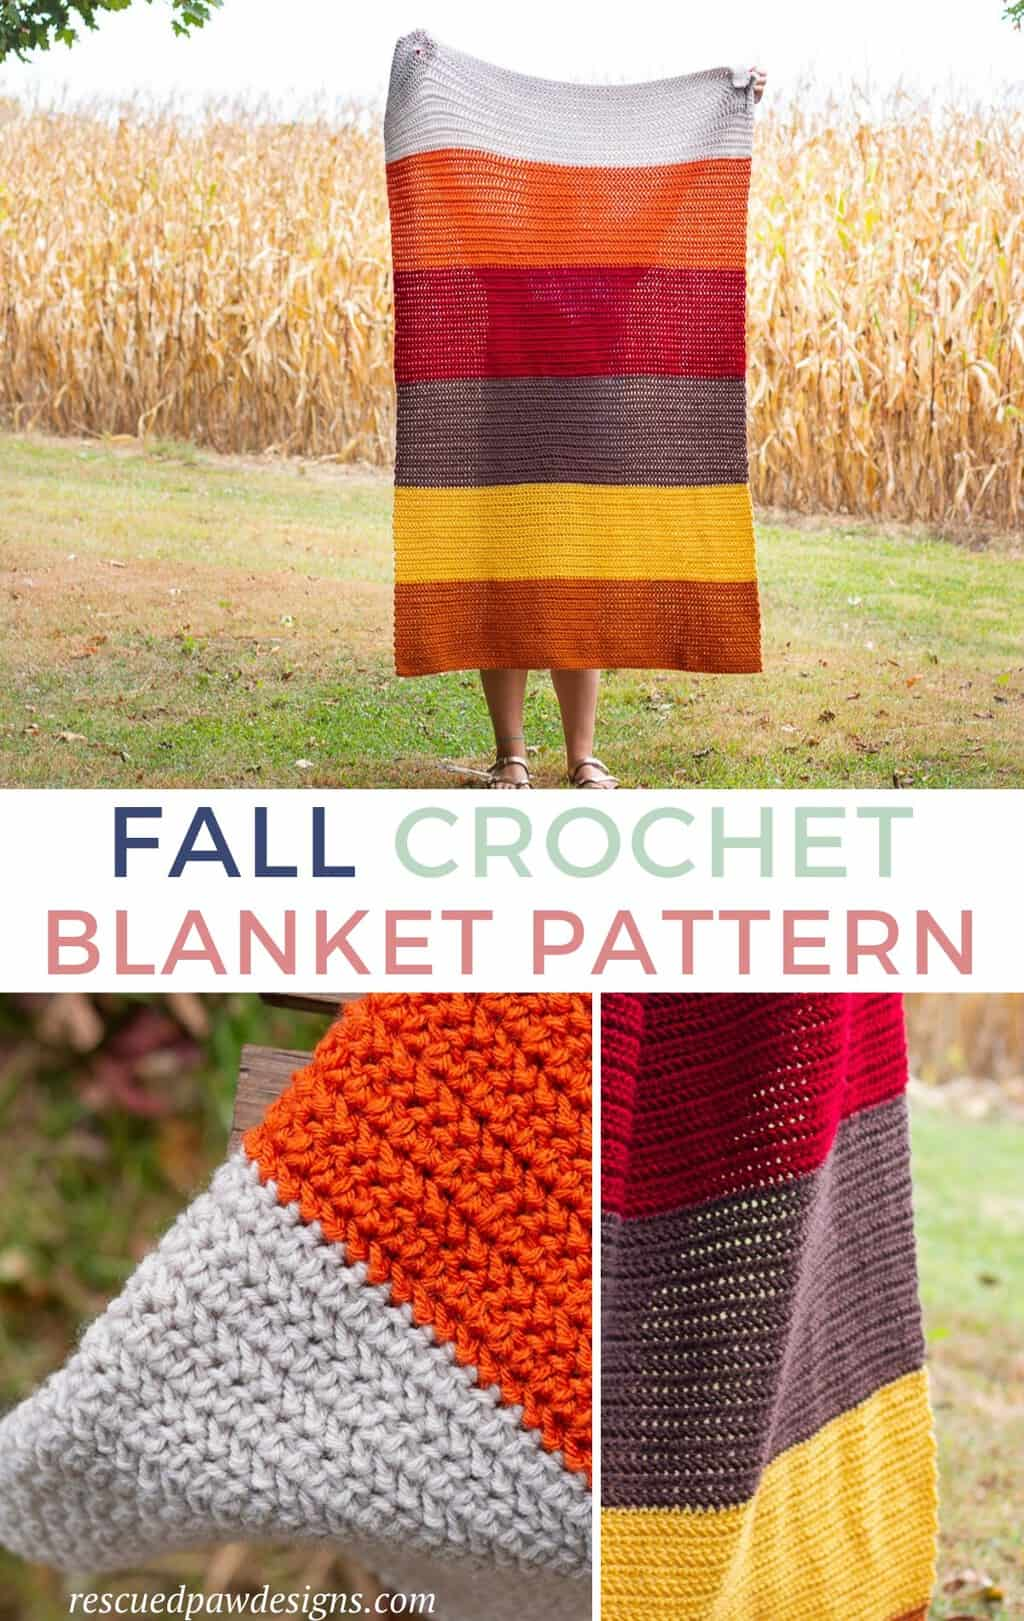 Fall Crochet Blanket Pattern Colorblocked